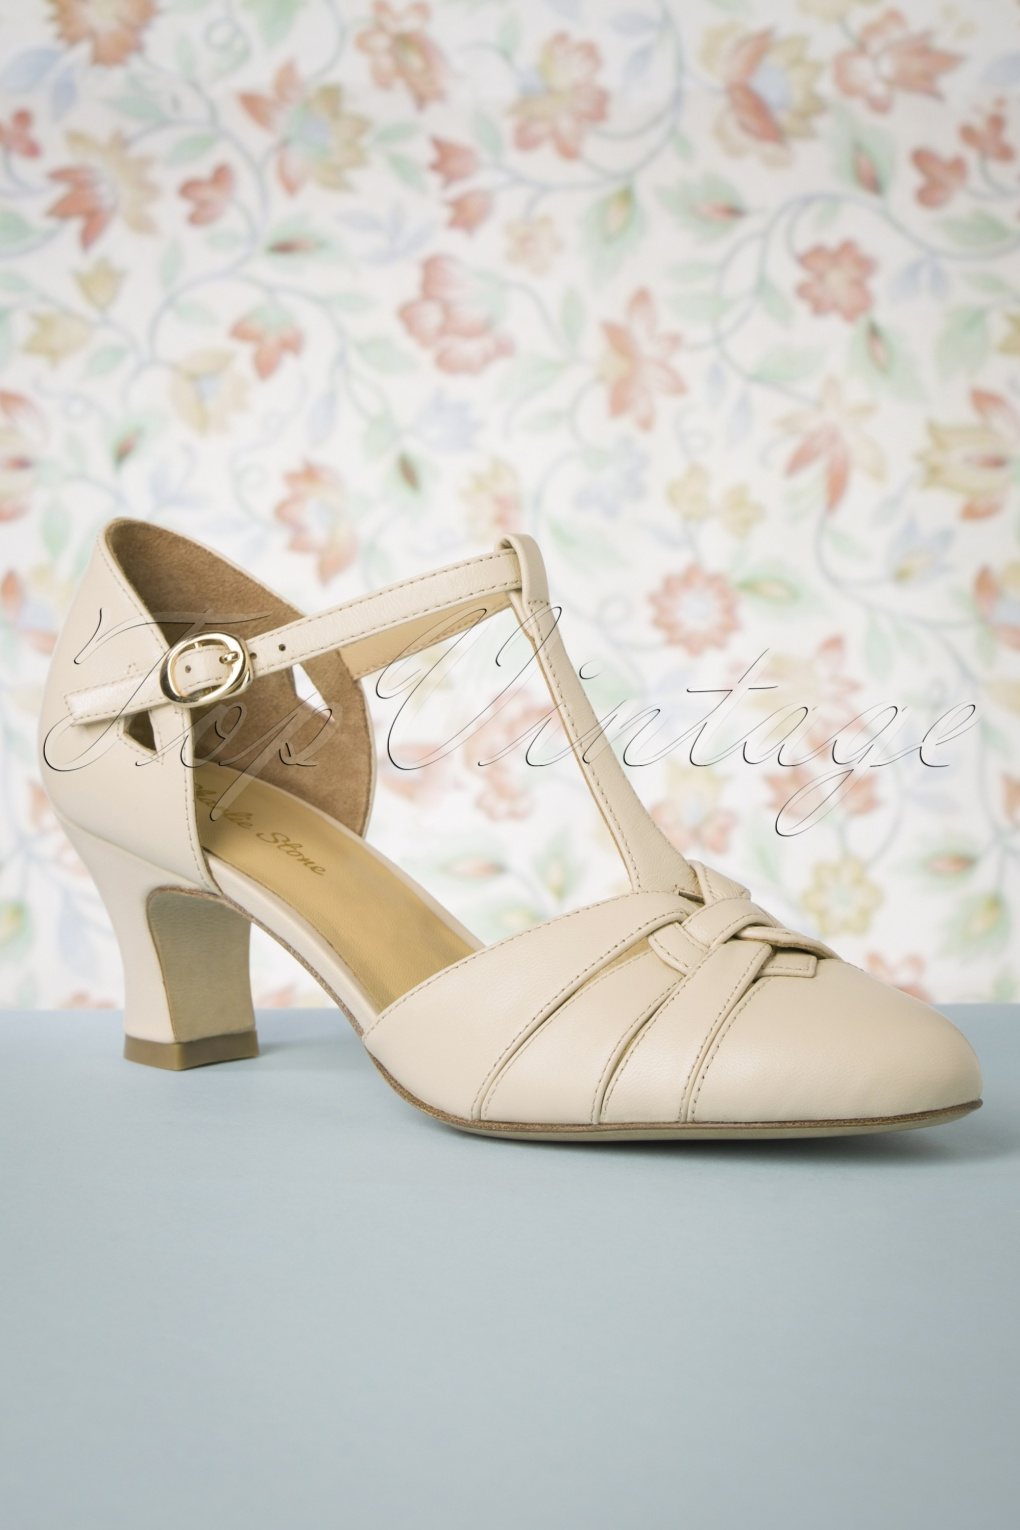 1960s Shoes: 8 Popular Shoe Styles 50s Montpellier T-Strap Pumps in Cream £148.34 AT vintagedancer.com